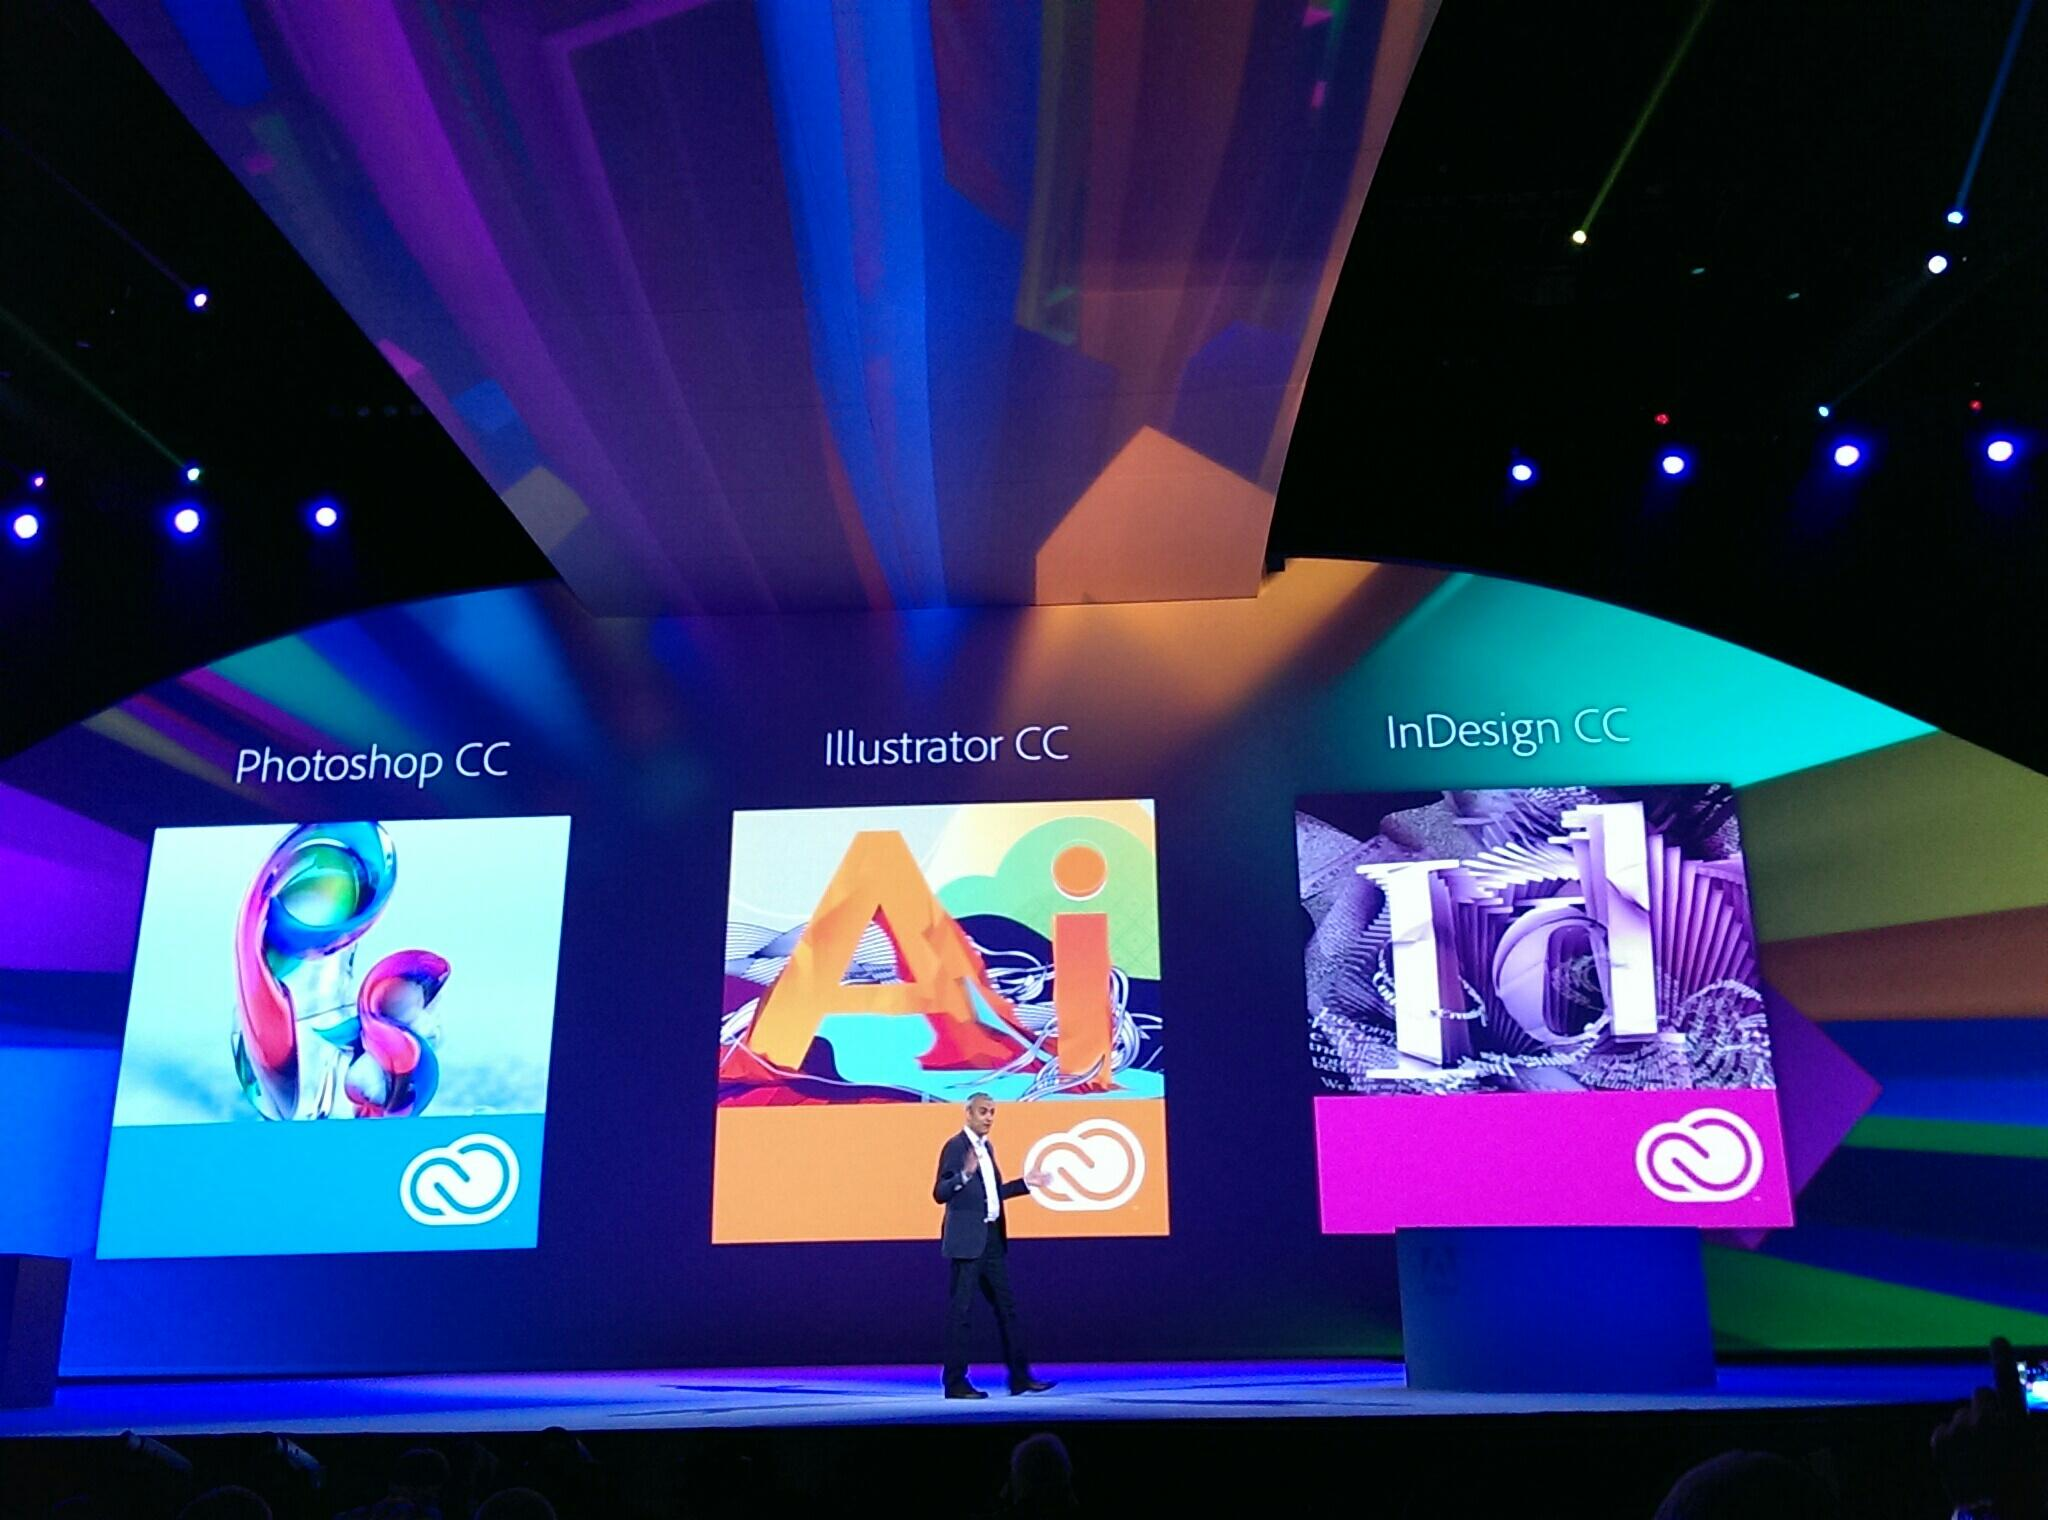 RT @Adobe: Today we announce the rebrand of our creative tools. We're renaming them CC. #AdobeMAX http://t.co/qG7ShzRDyZ